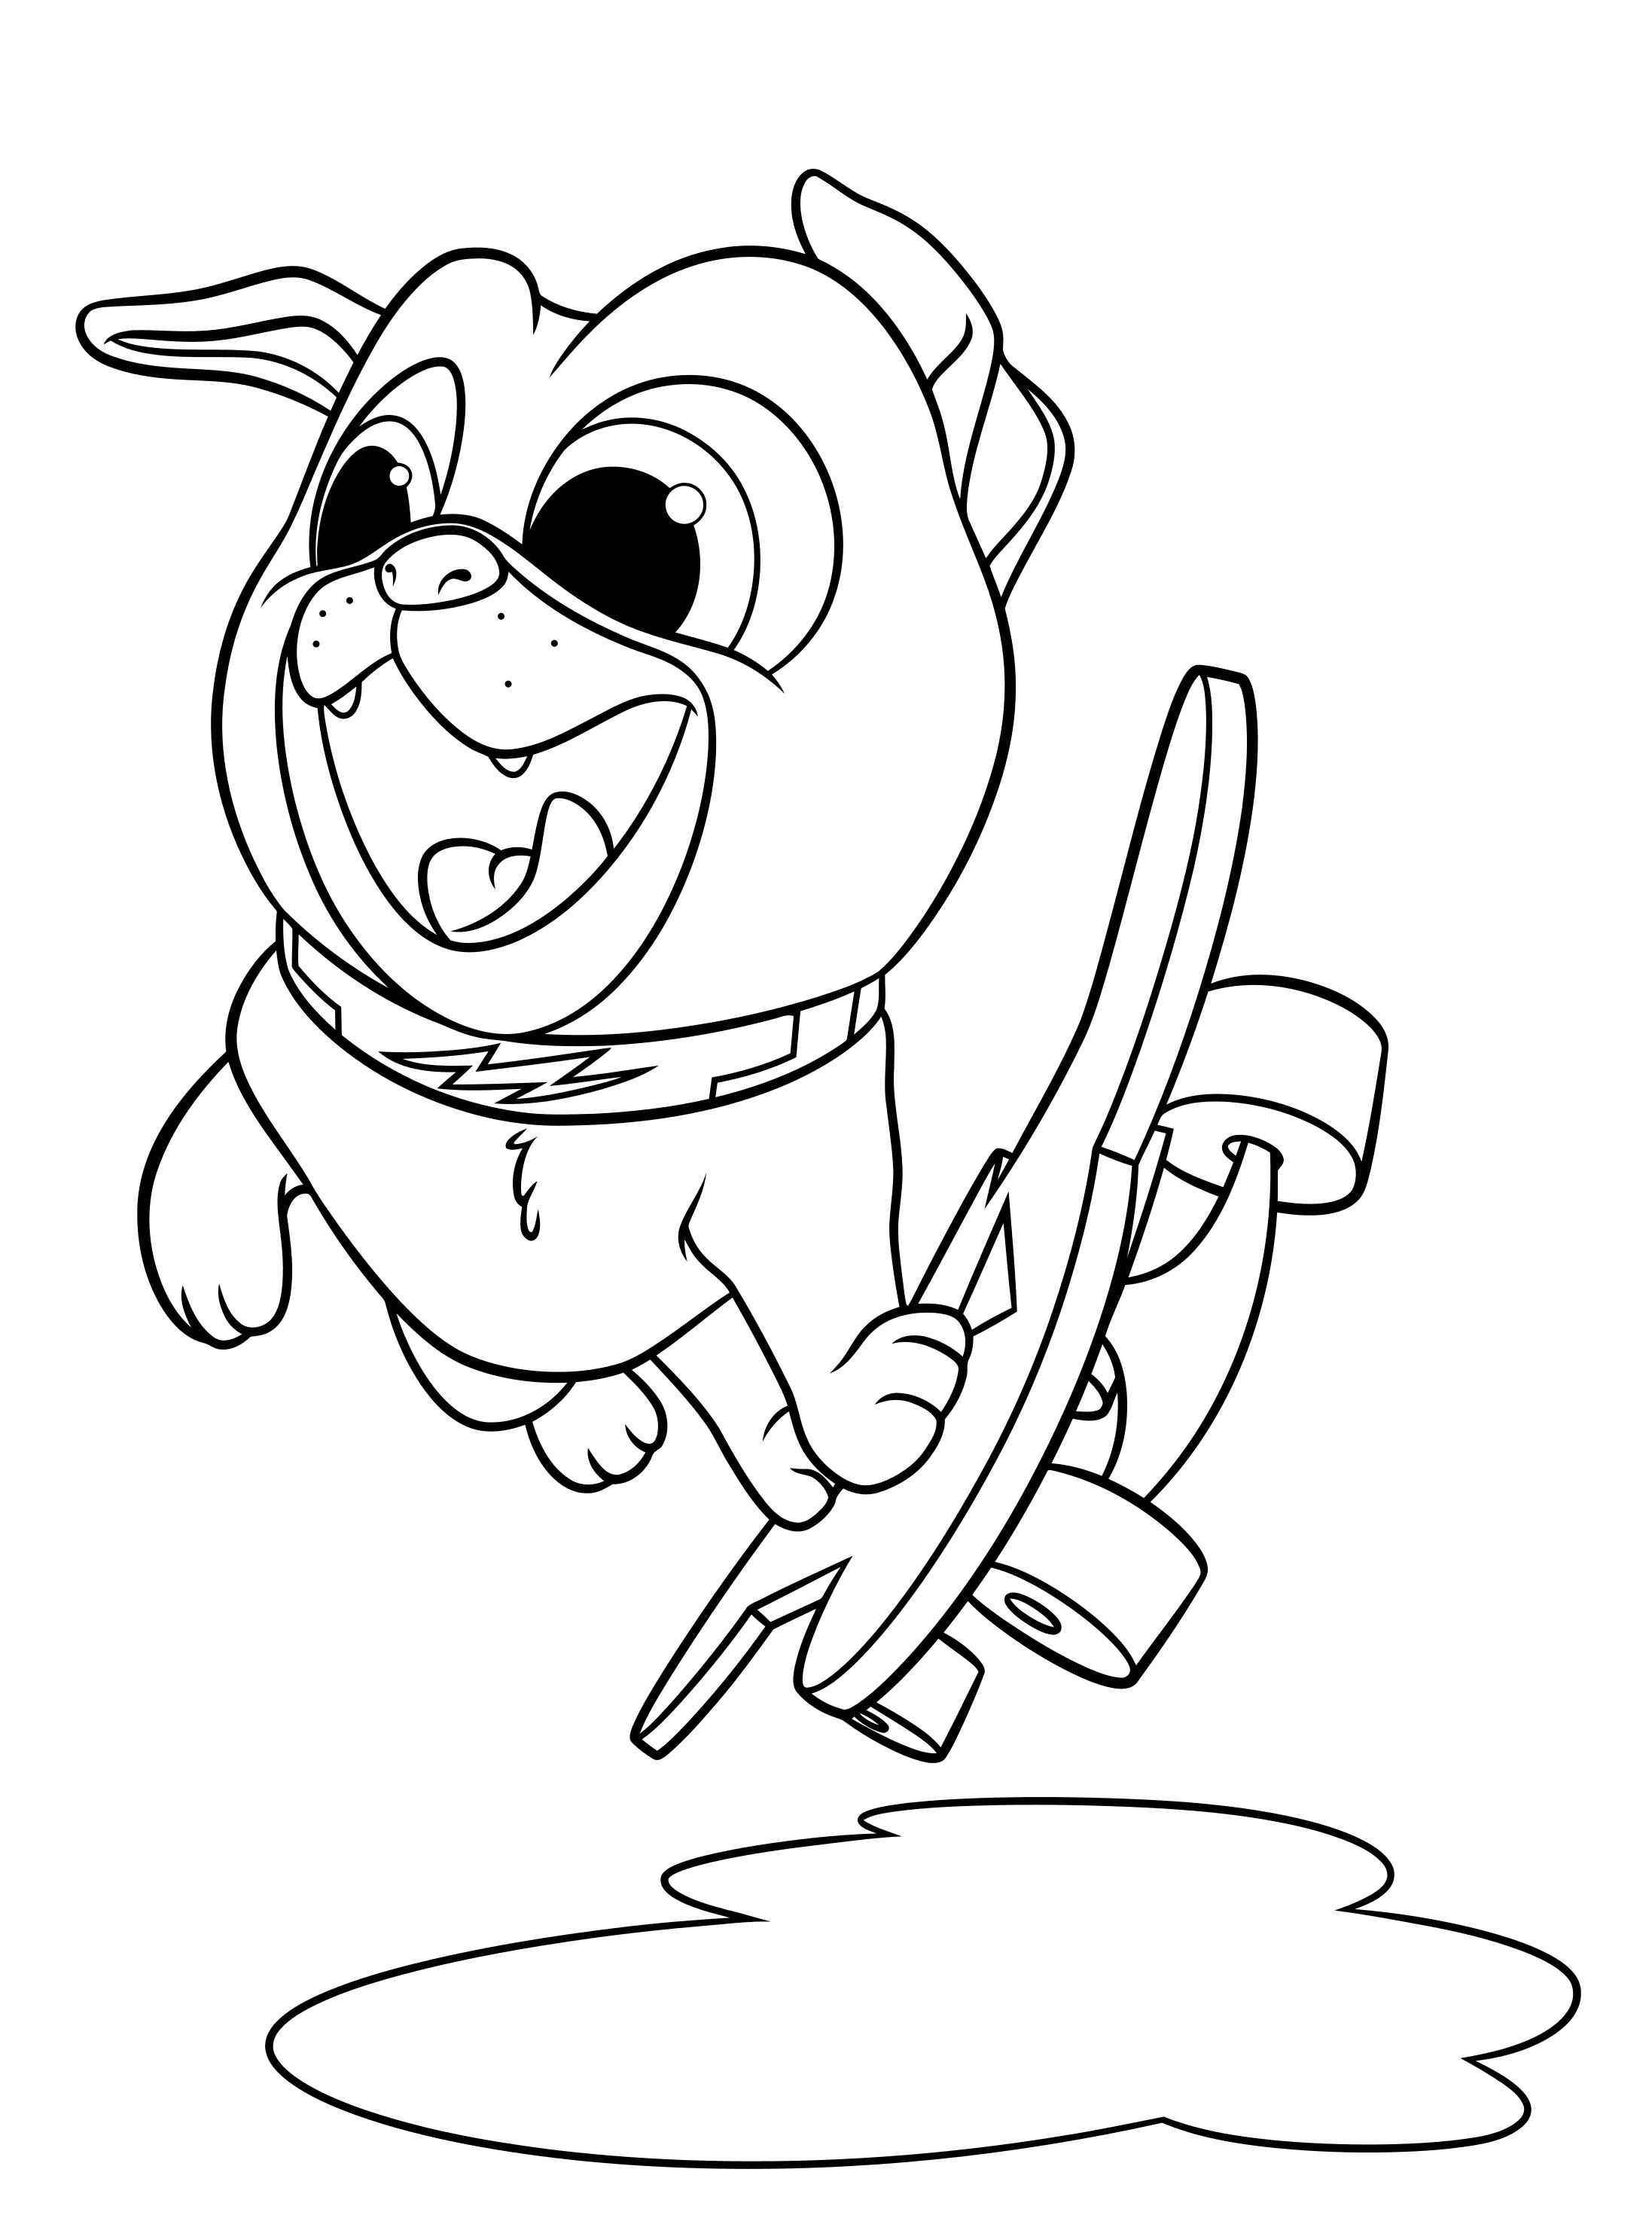 puppy pictures for coloring print download draw your own puppy coloring pages puppy for coloring pictures